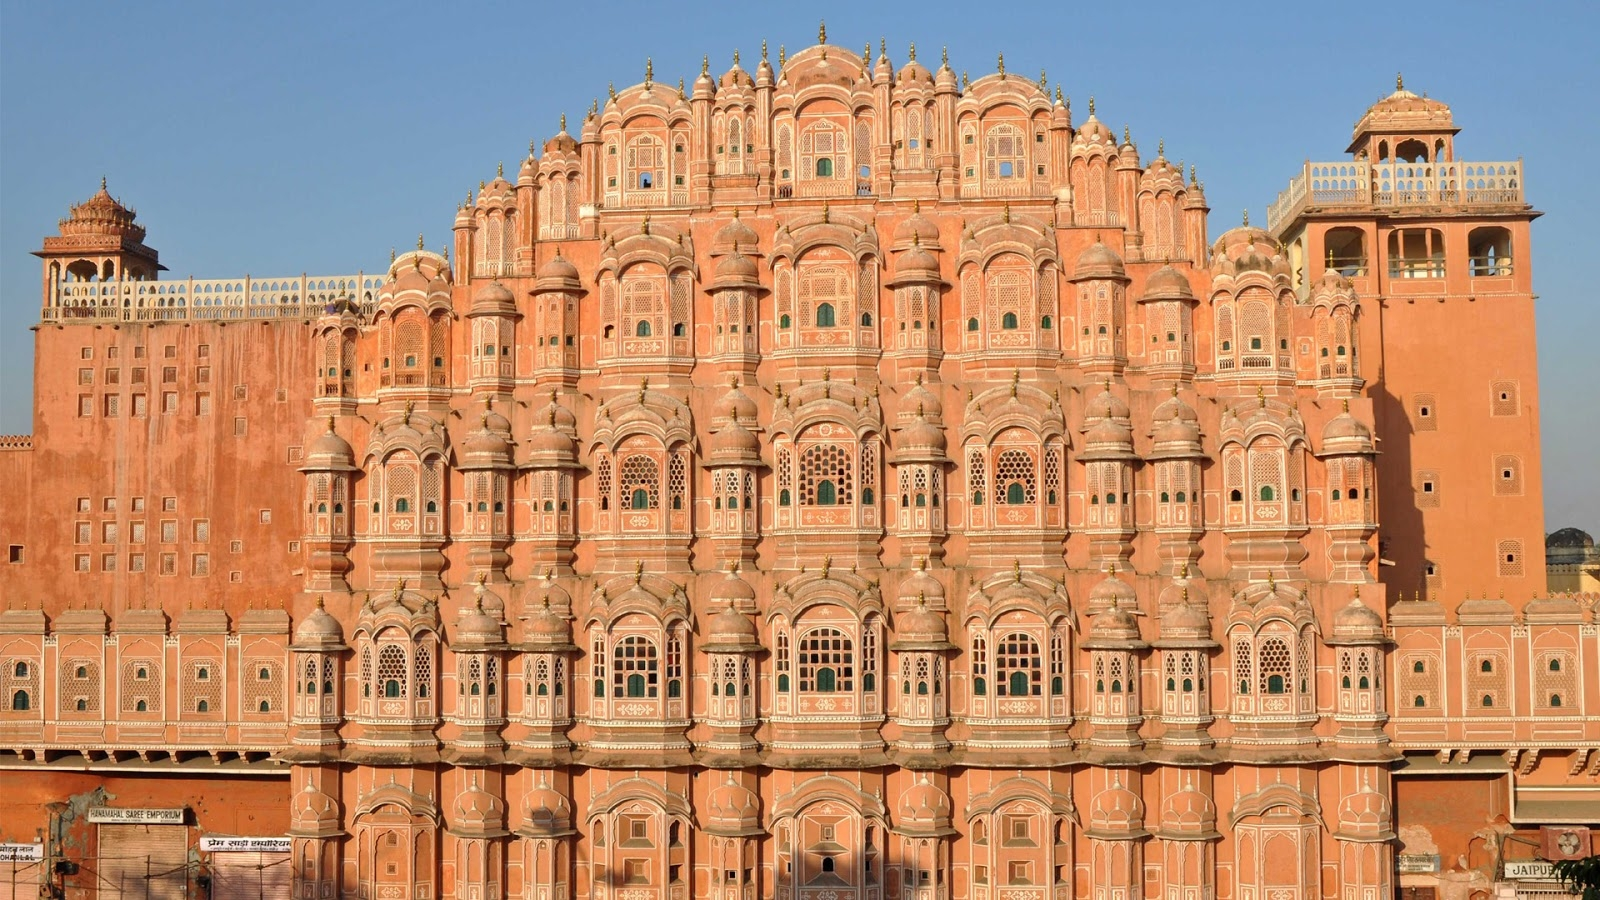 Hawa Mahal or Palace of Winds